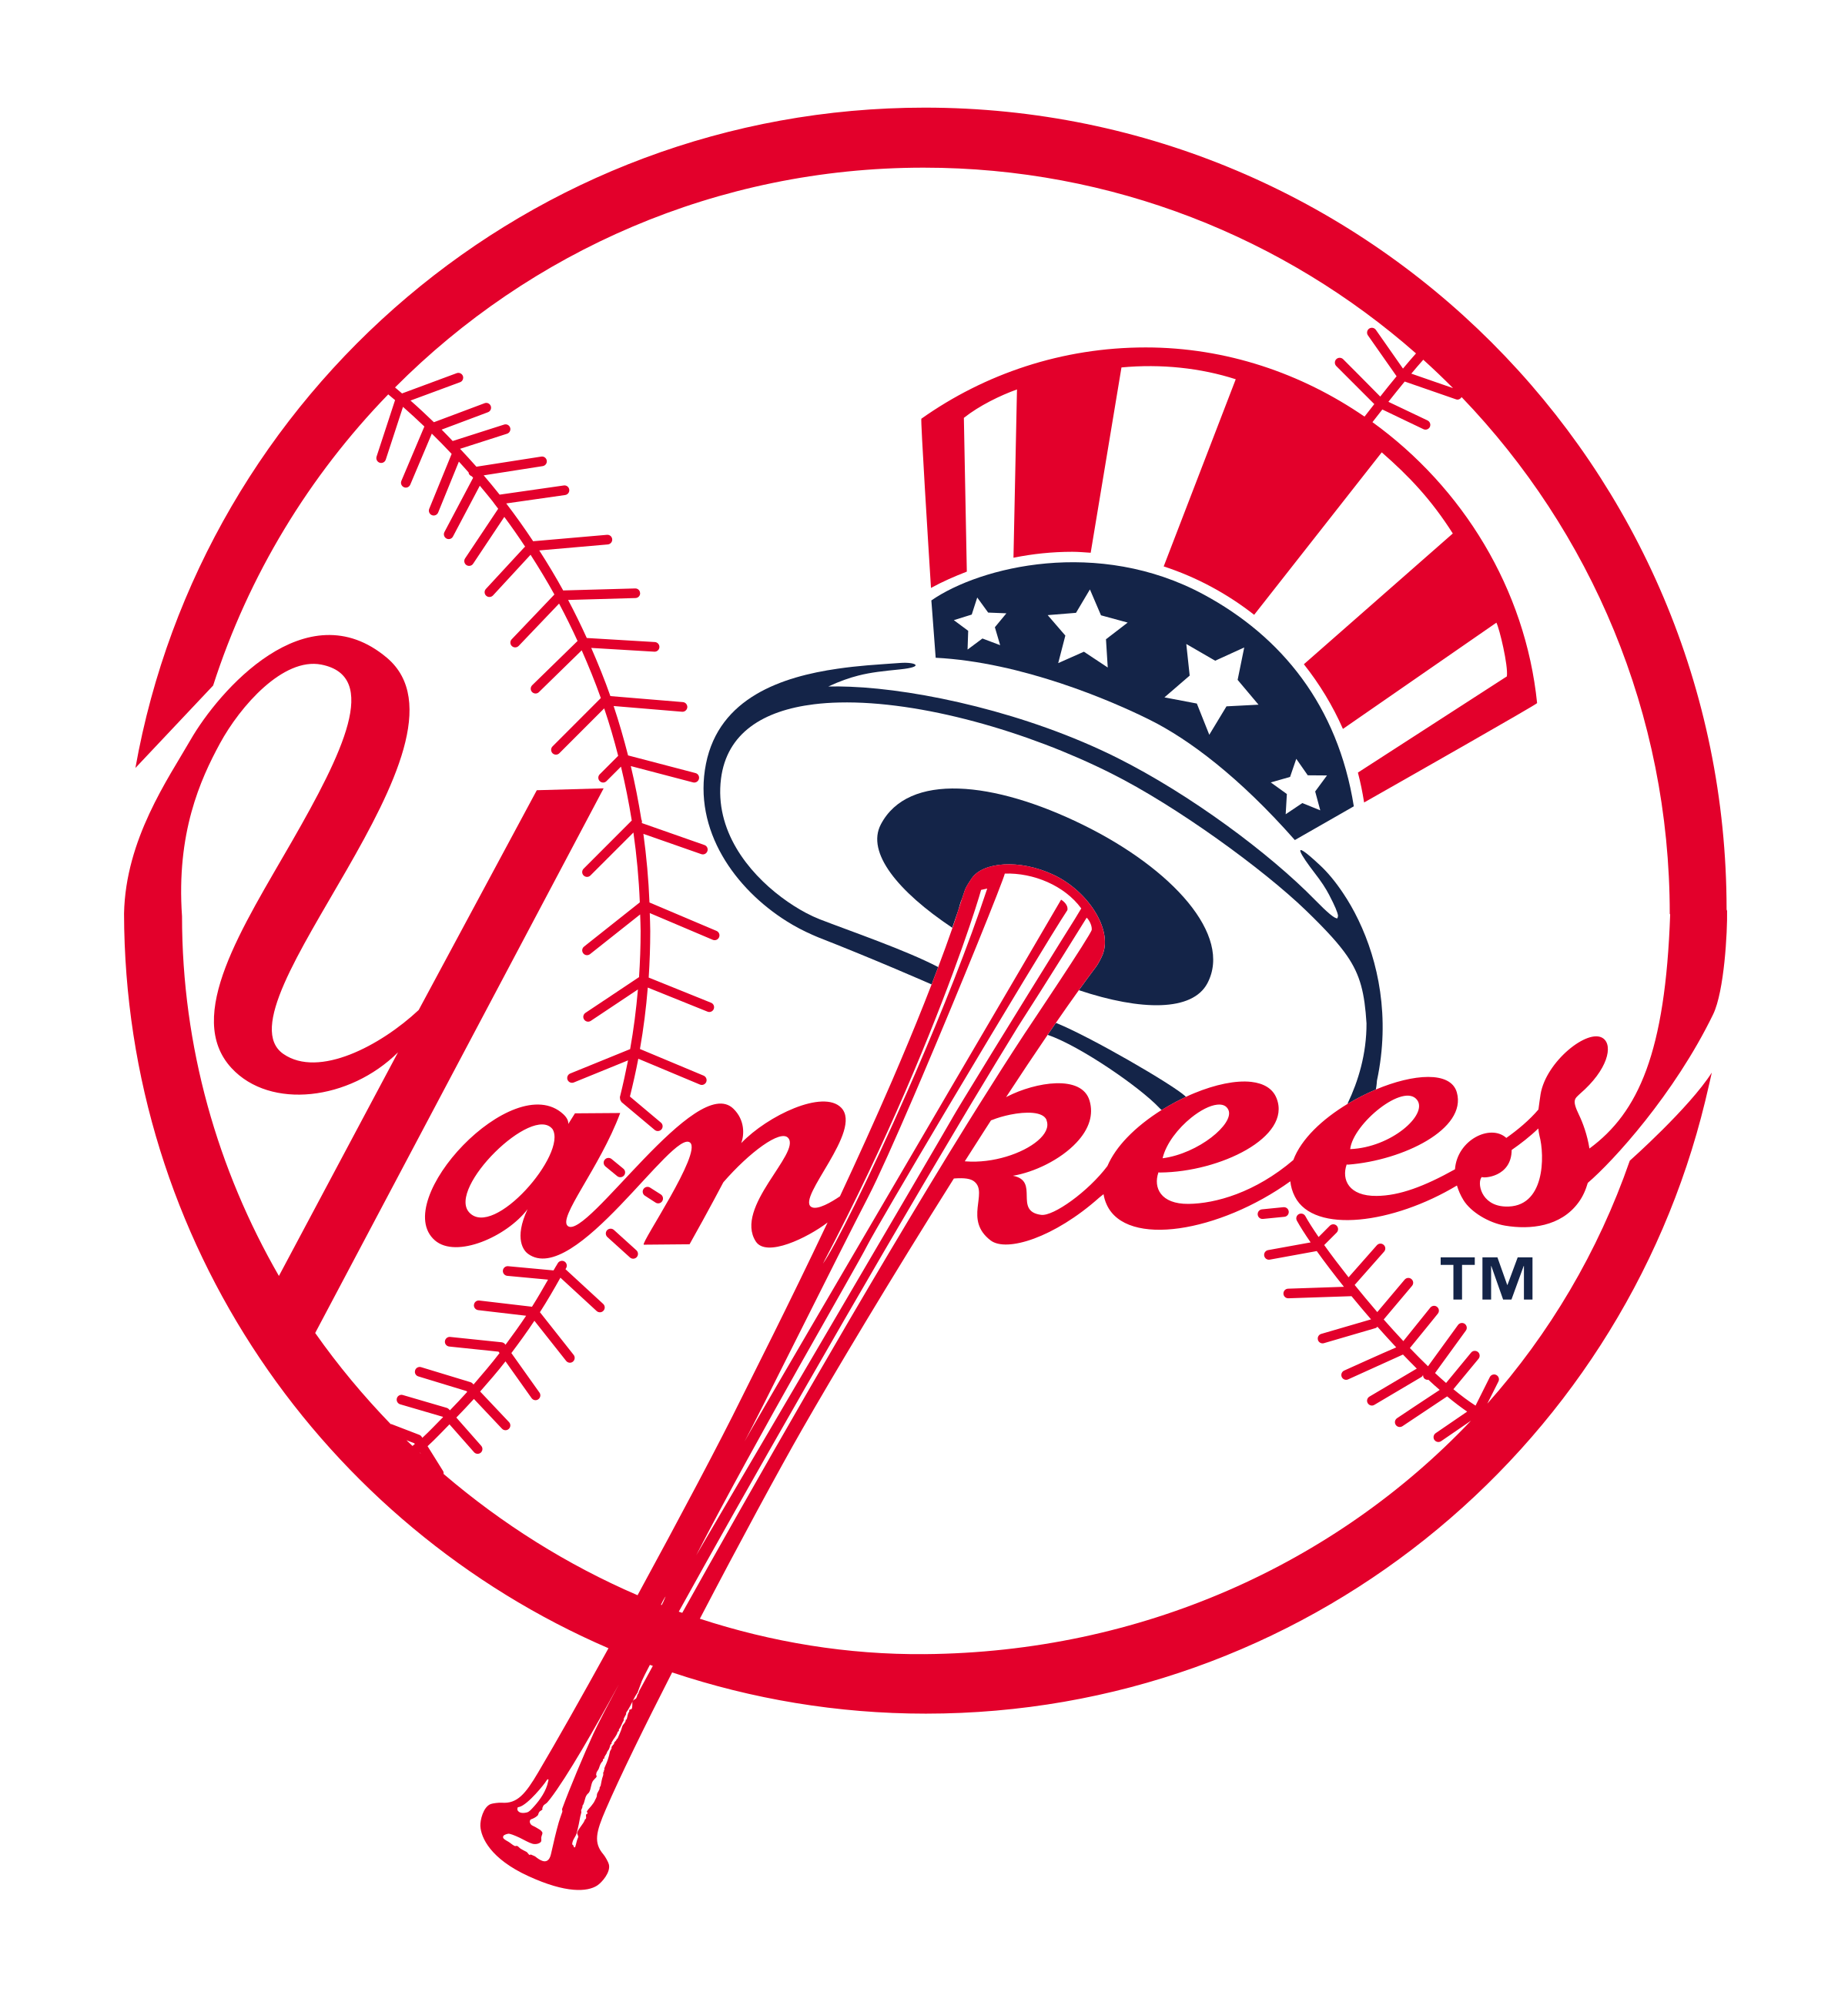 New York Yankees Logo Png Transparent Svg Vector Freebie Supply In 2020 New York Yankees Logo Yankees Logo New York Yankees Baseball